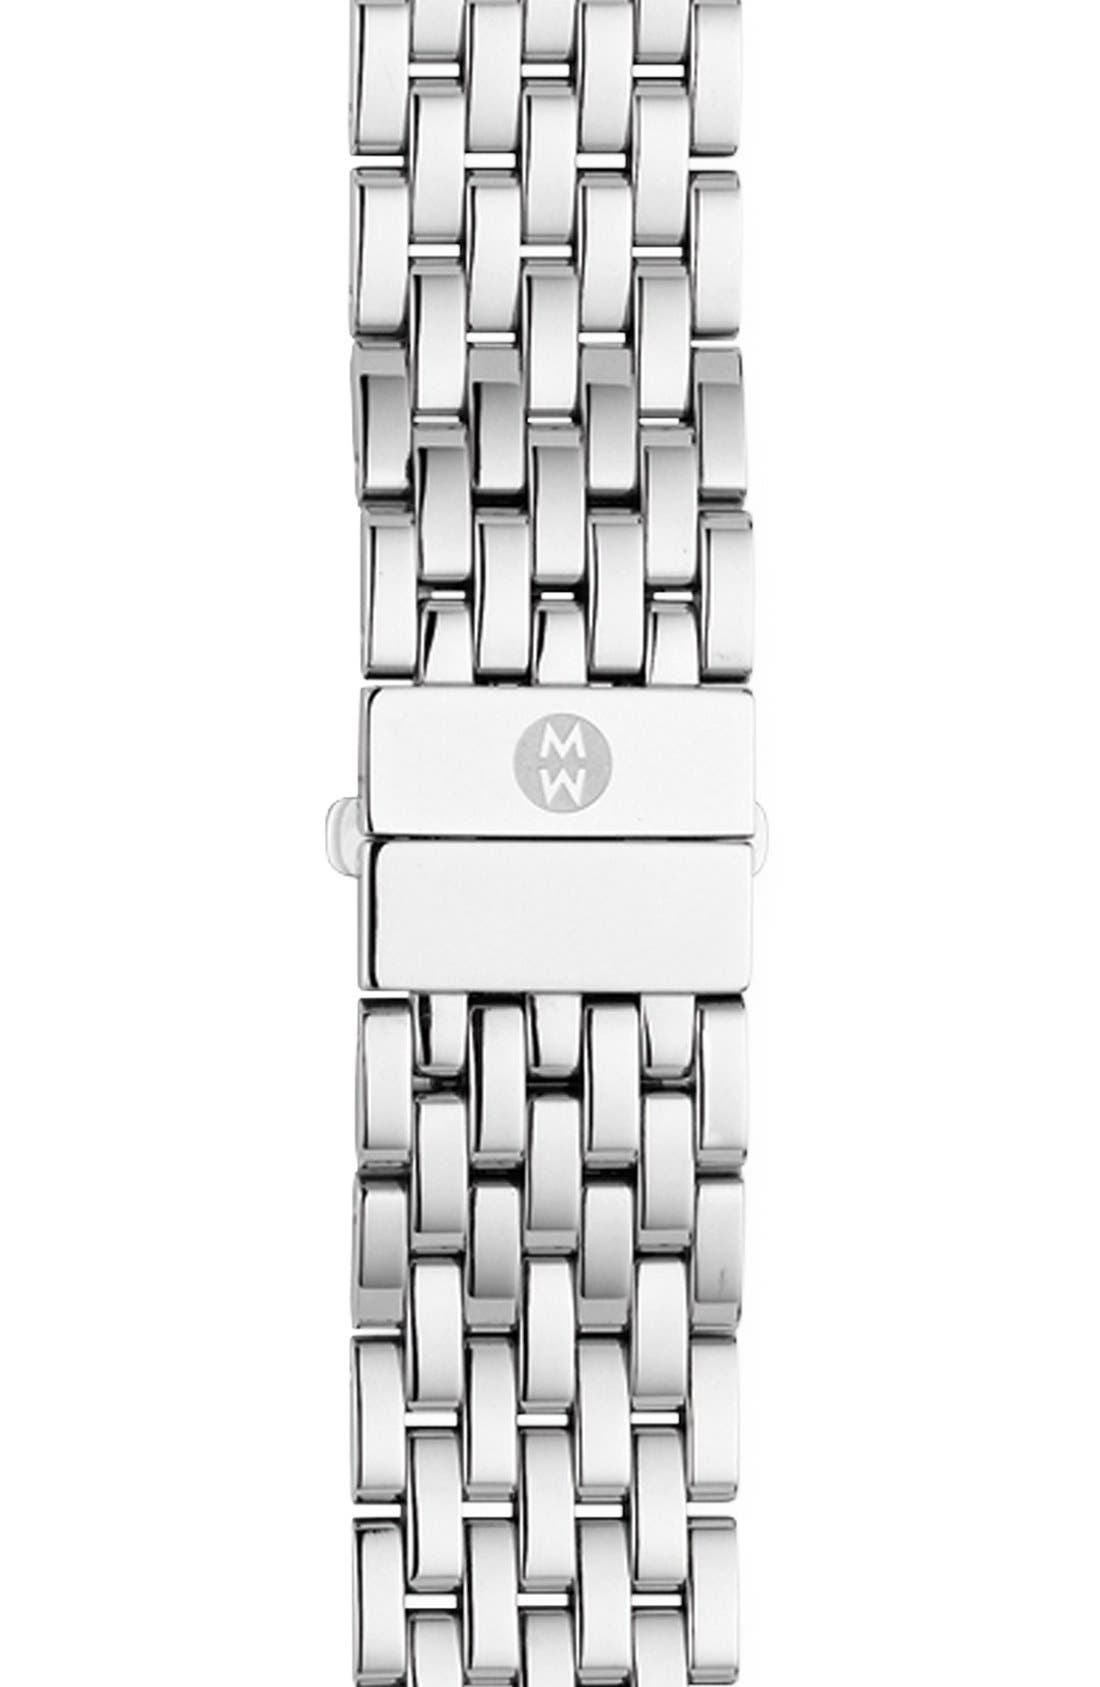 Alternate Image 1 Selected - MICHELE 'CSX-36' 18mm Bracelet Watchband